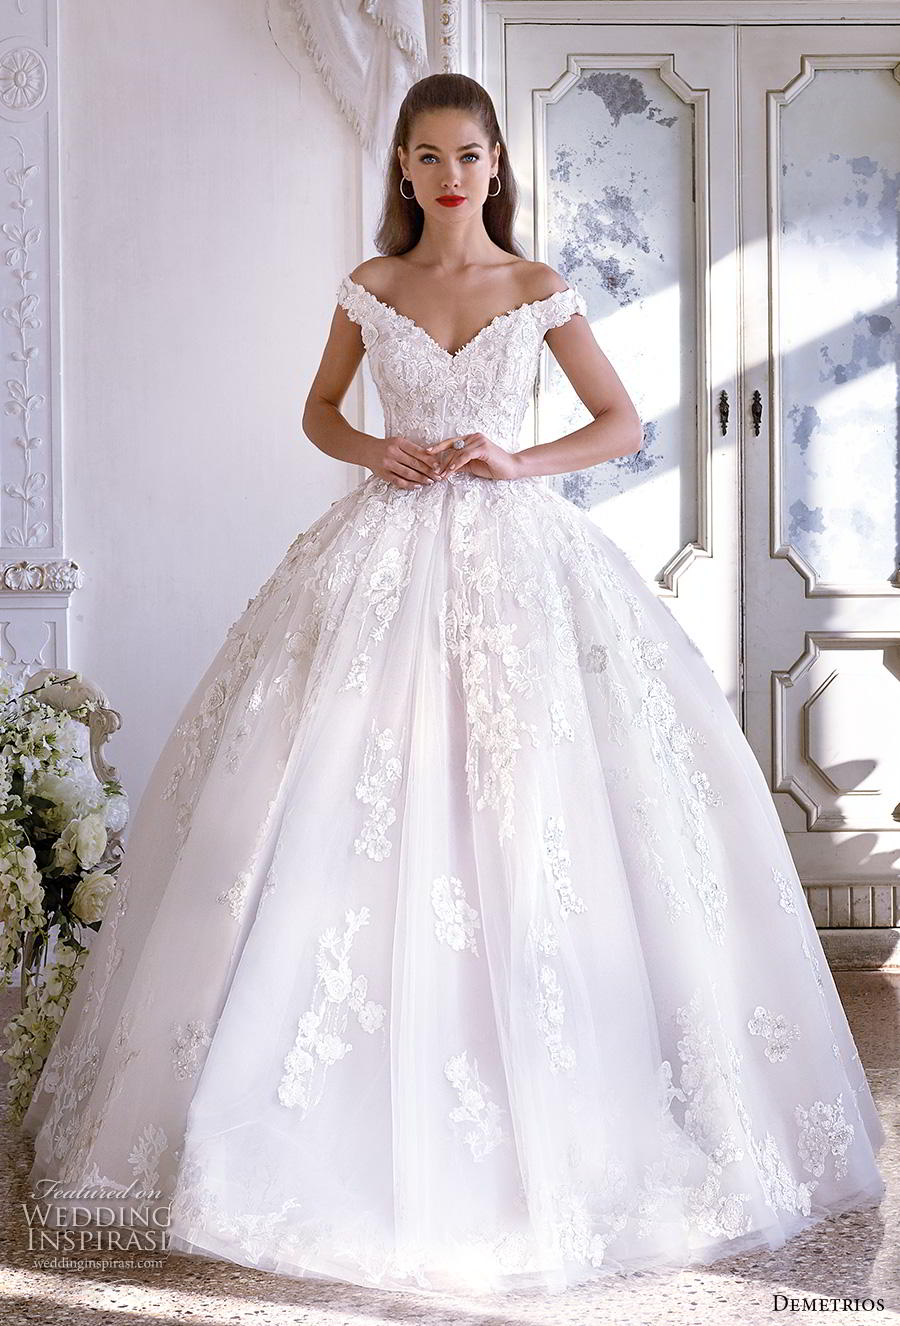 demetrios 2019 bridal off the shoulder v neck heavily embellished bodice princess romantic ball gown a  line wedding dress royal train (18) mv